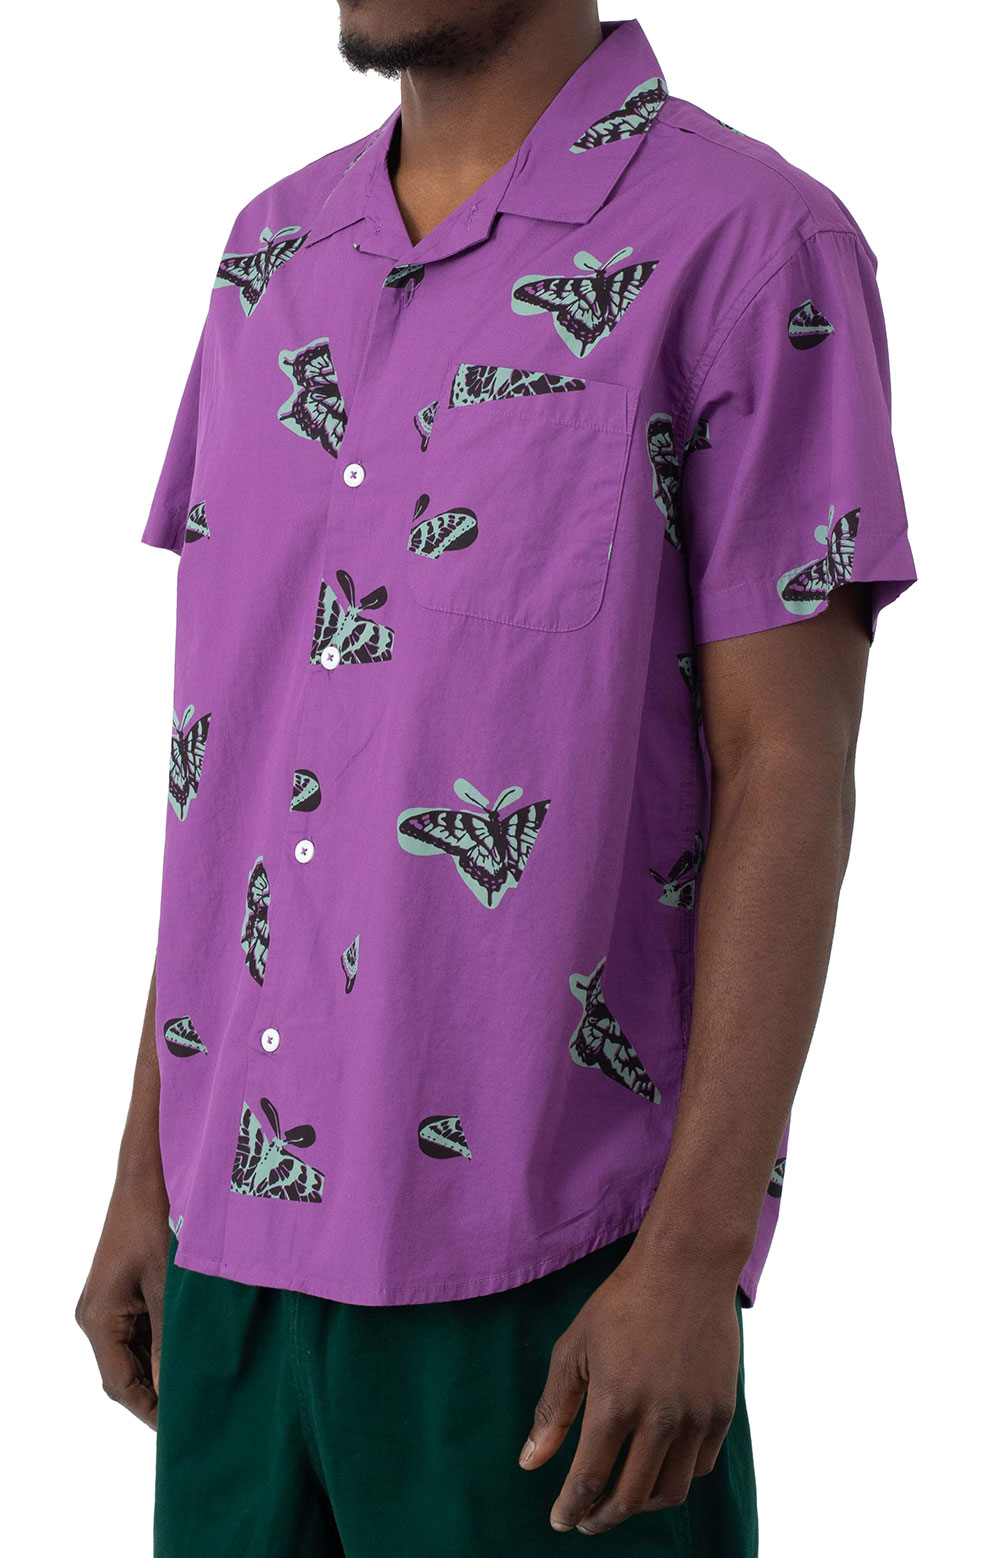 Butterfly Woven Button-Up Shirt - Purple Multi  2